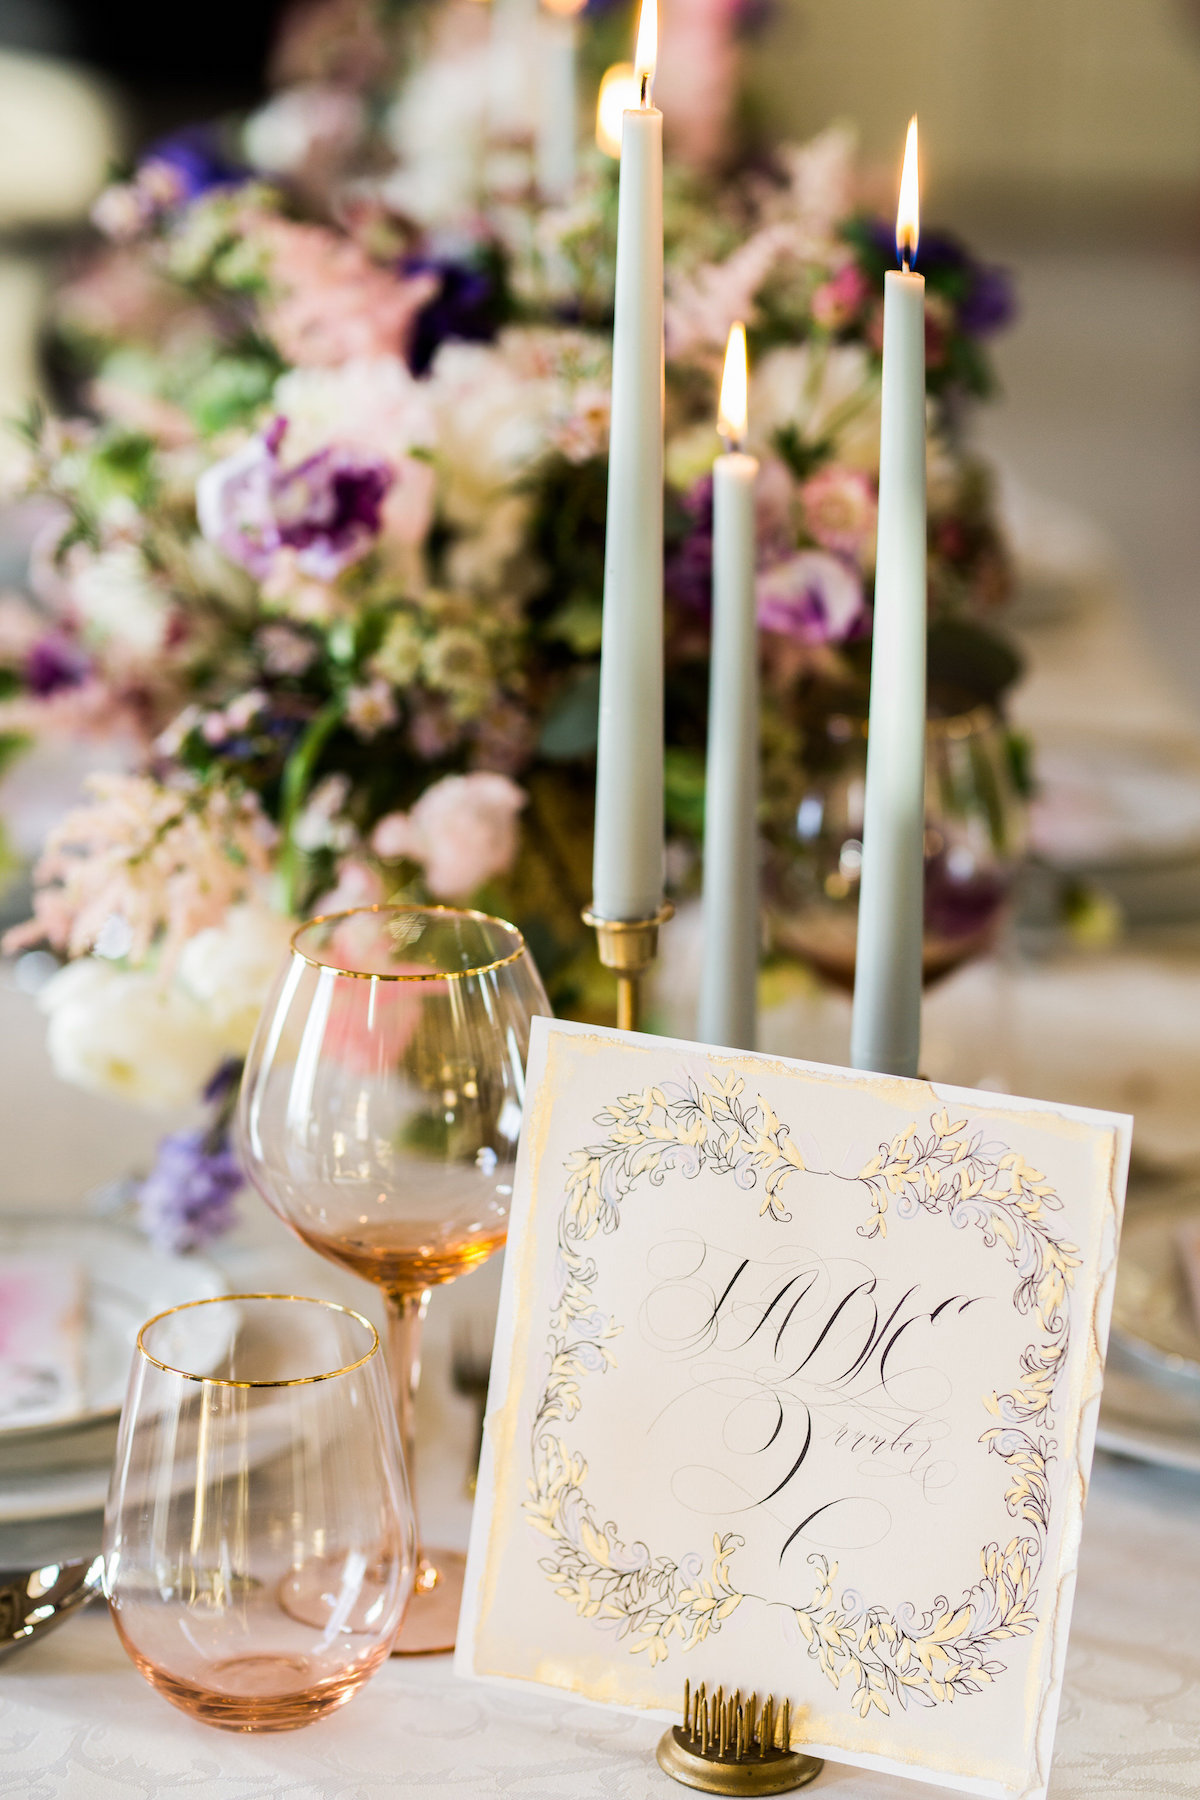 Illustrated wedding invitation with a table number